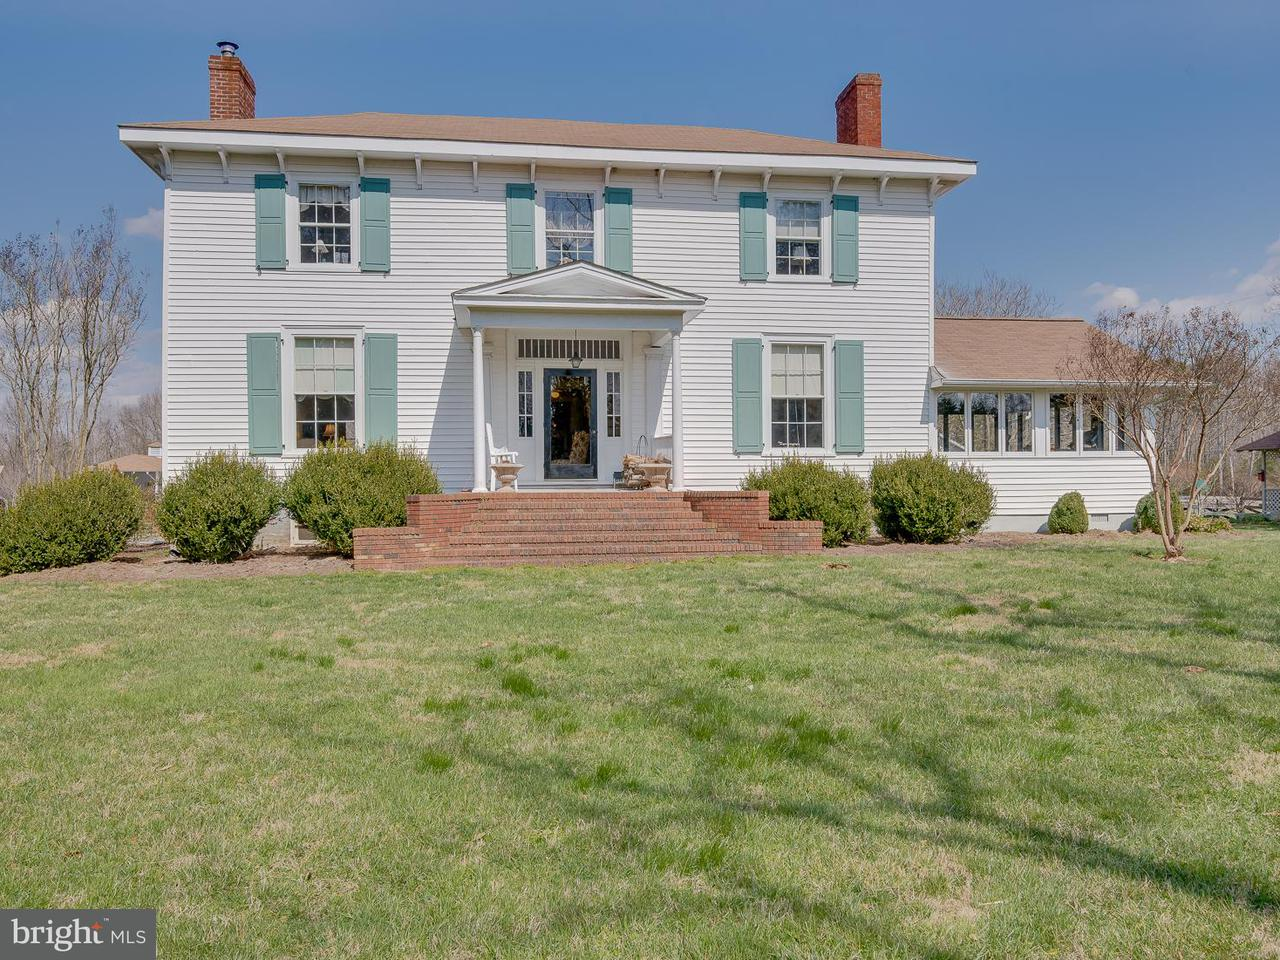 Farm for Sale at 12020 Fredericksburg Tpke Woodford, Virginia 22580 United States